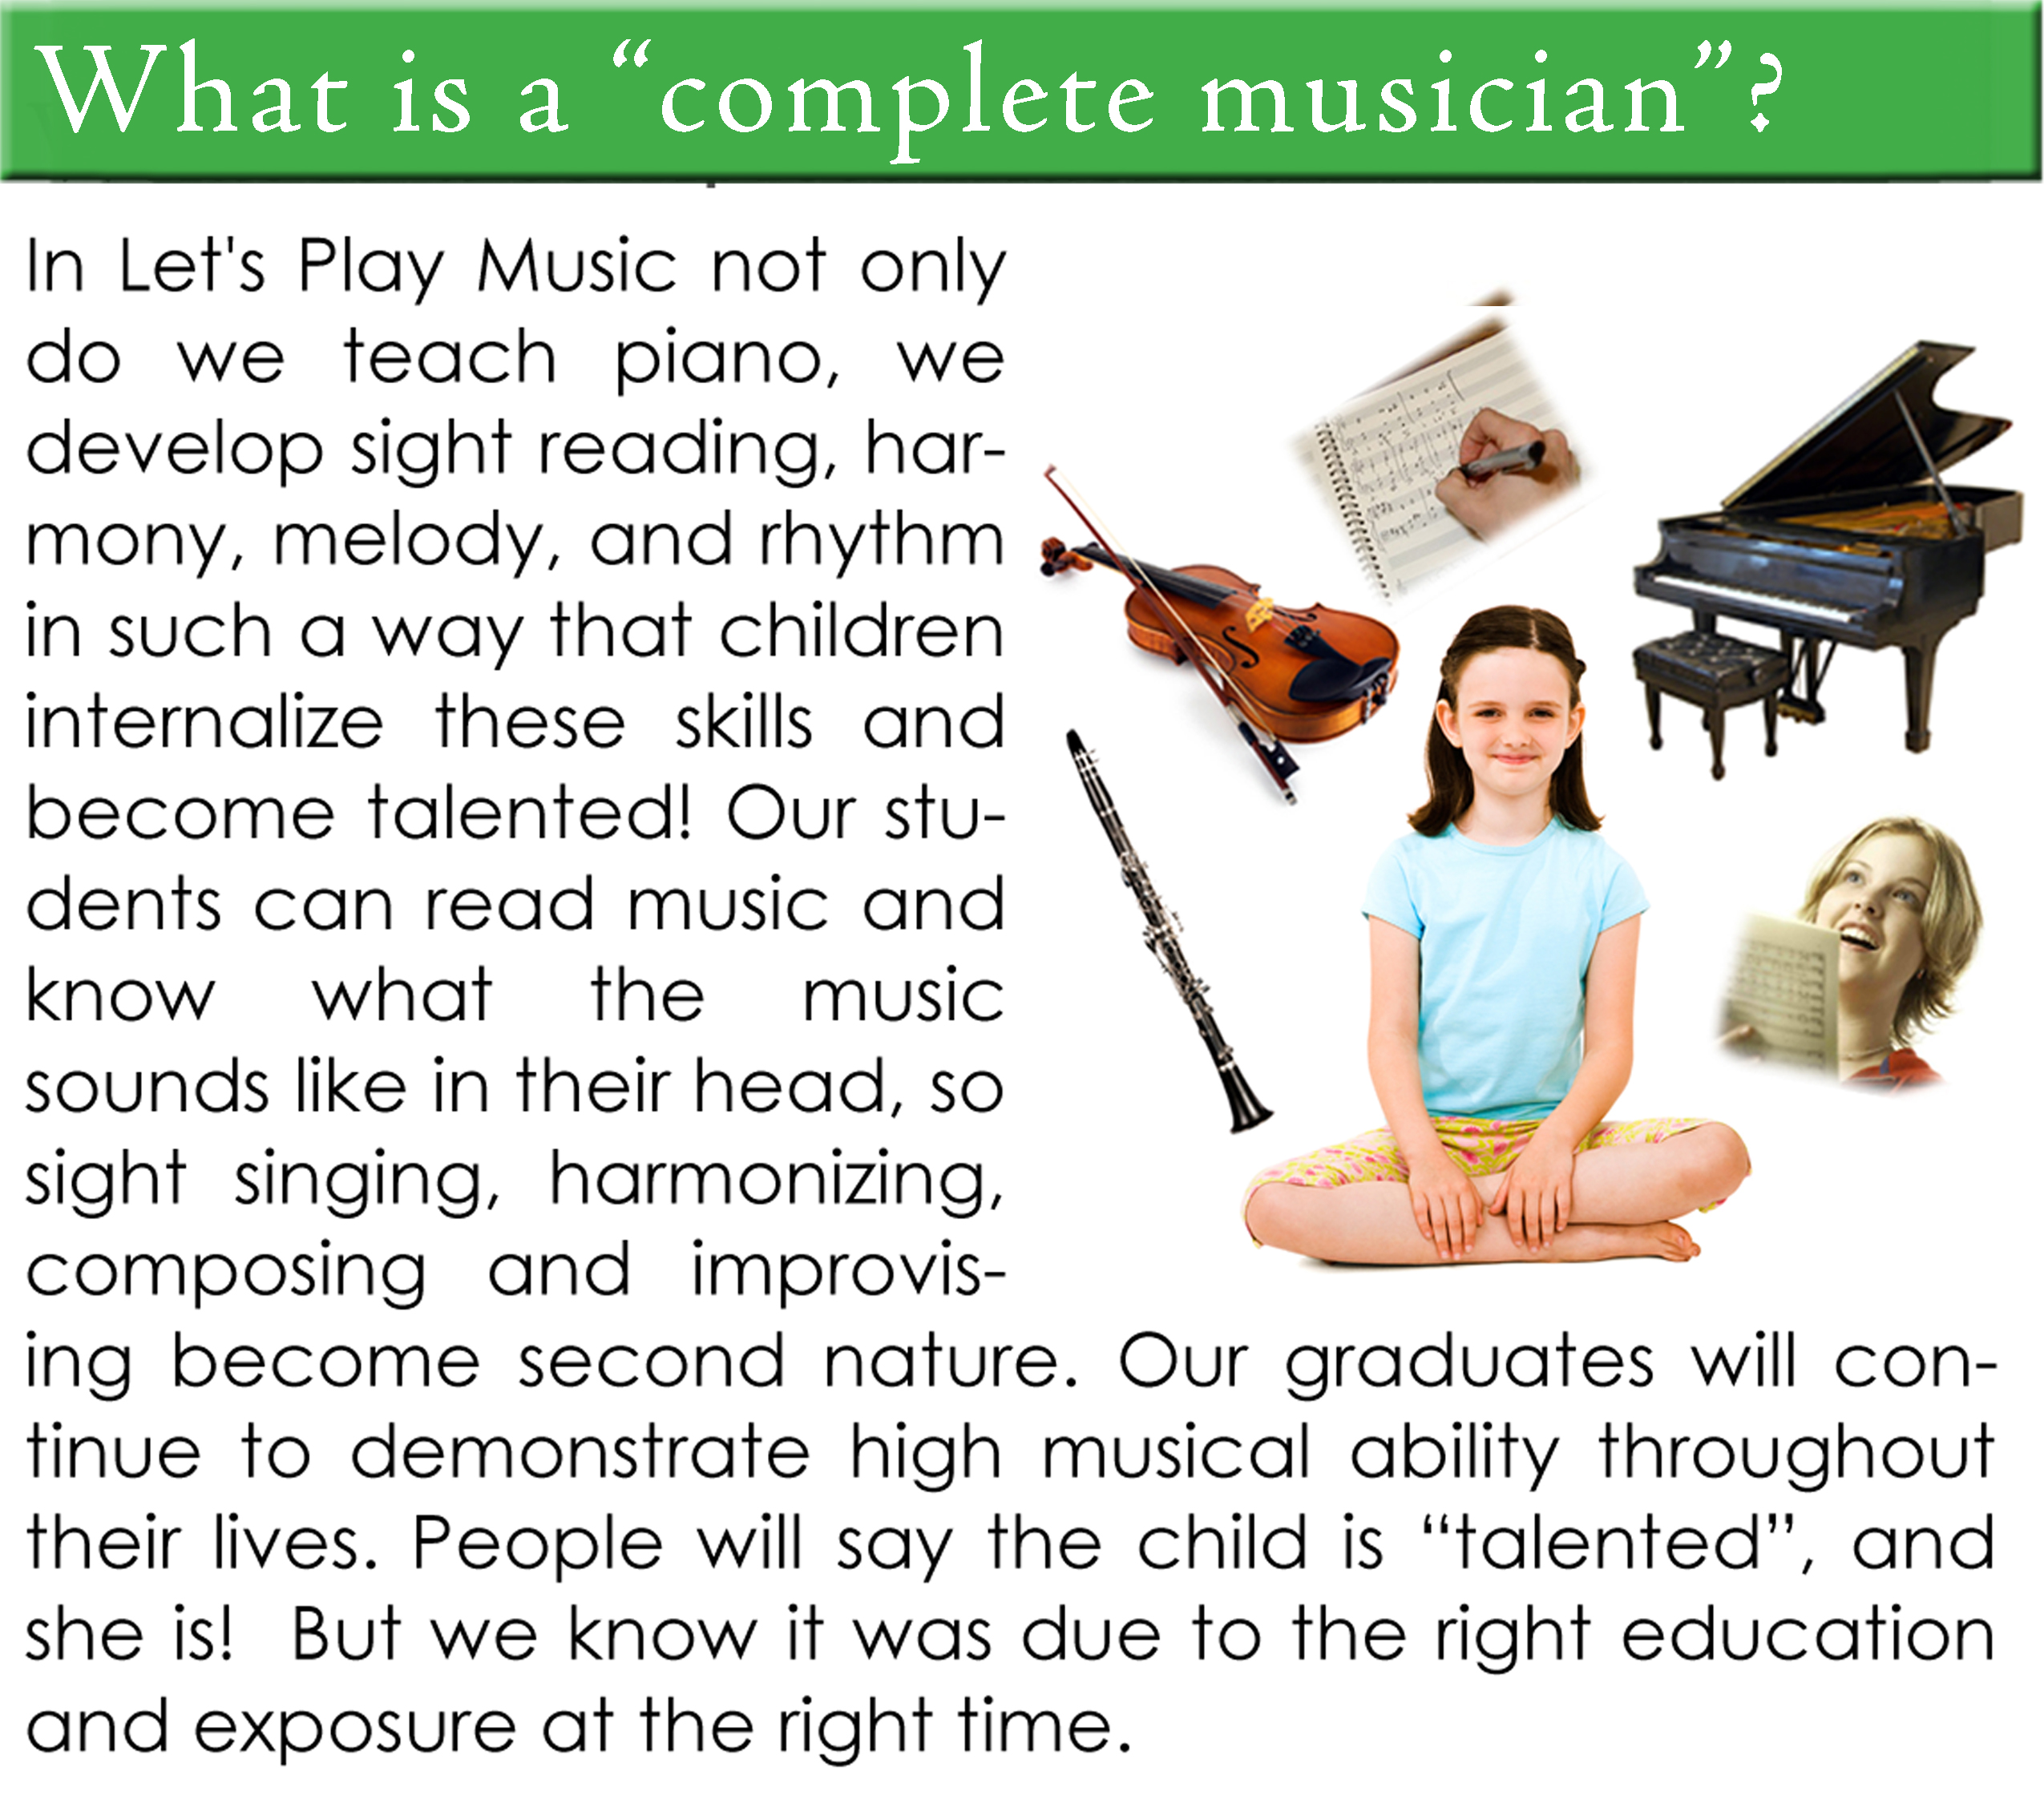 What is The Complete Musician